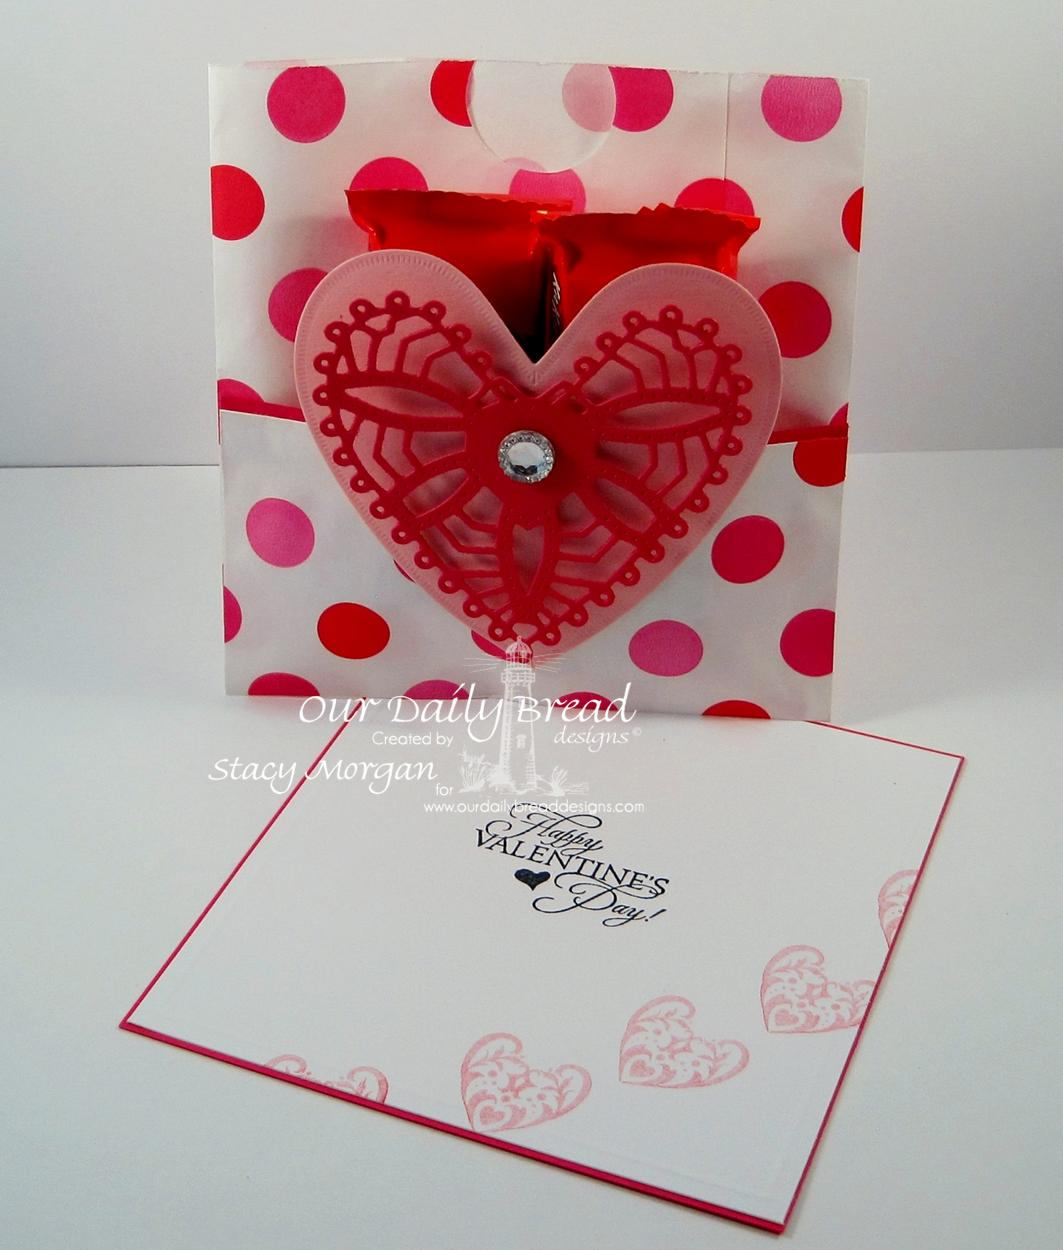 Stamps - Our Daily Bread Designs Bless Your Heart, ODBD Custom Ornate Hearts Die